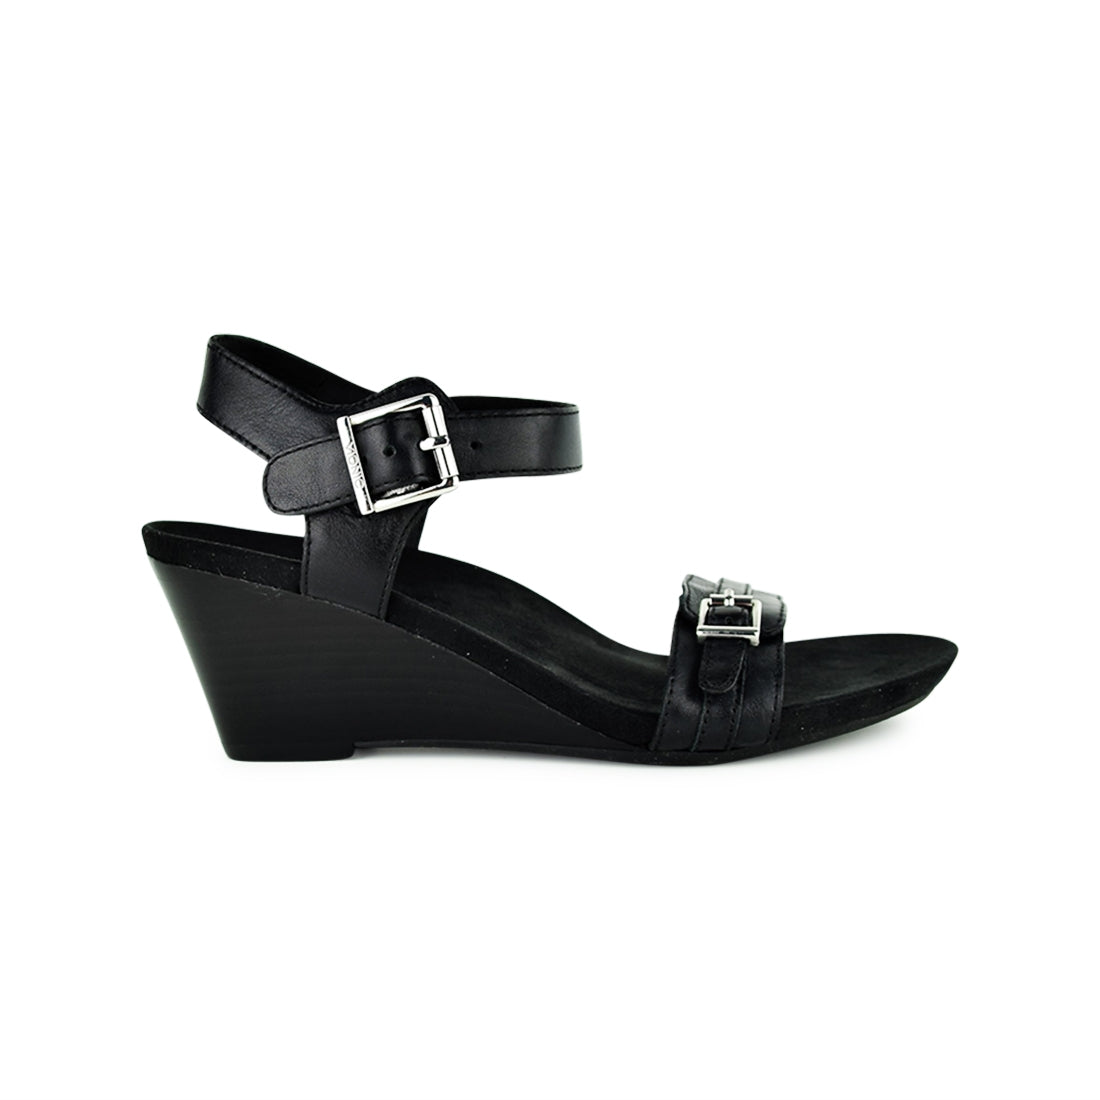 LAURIE - Vionic Wedge Sandal Black